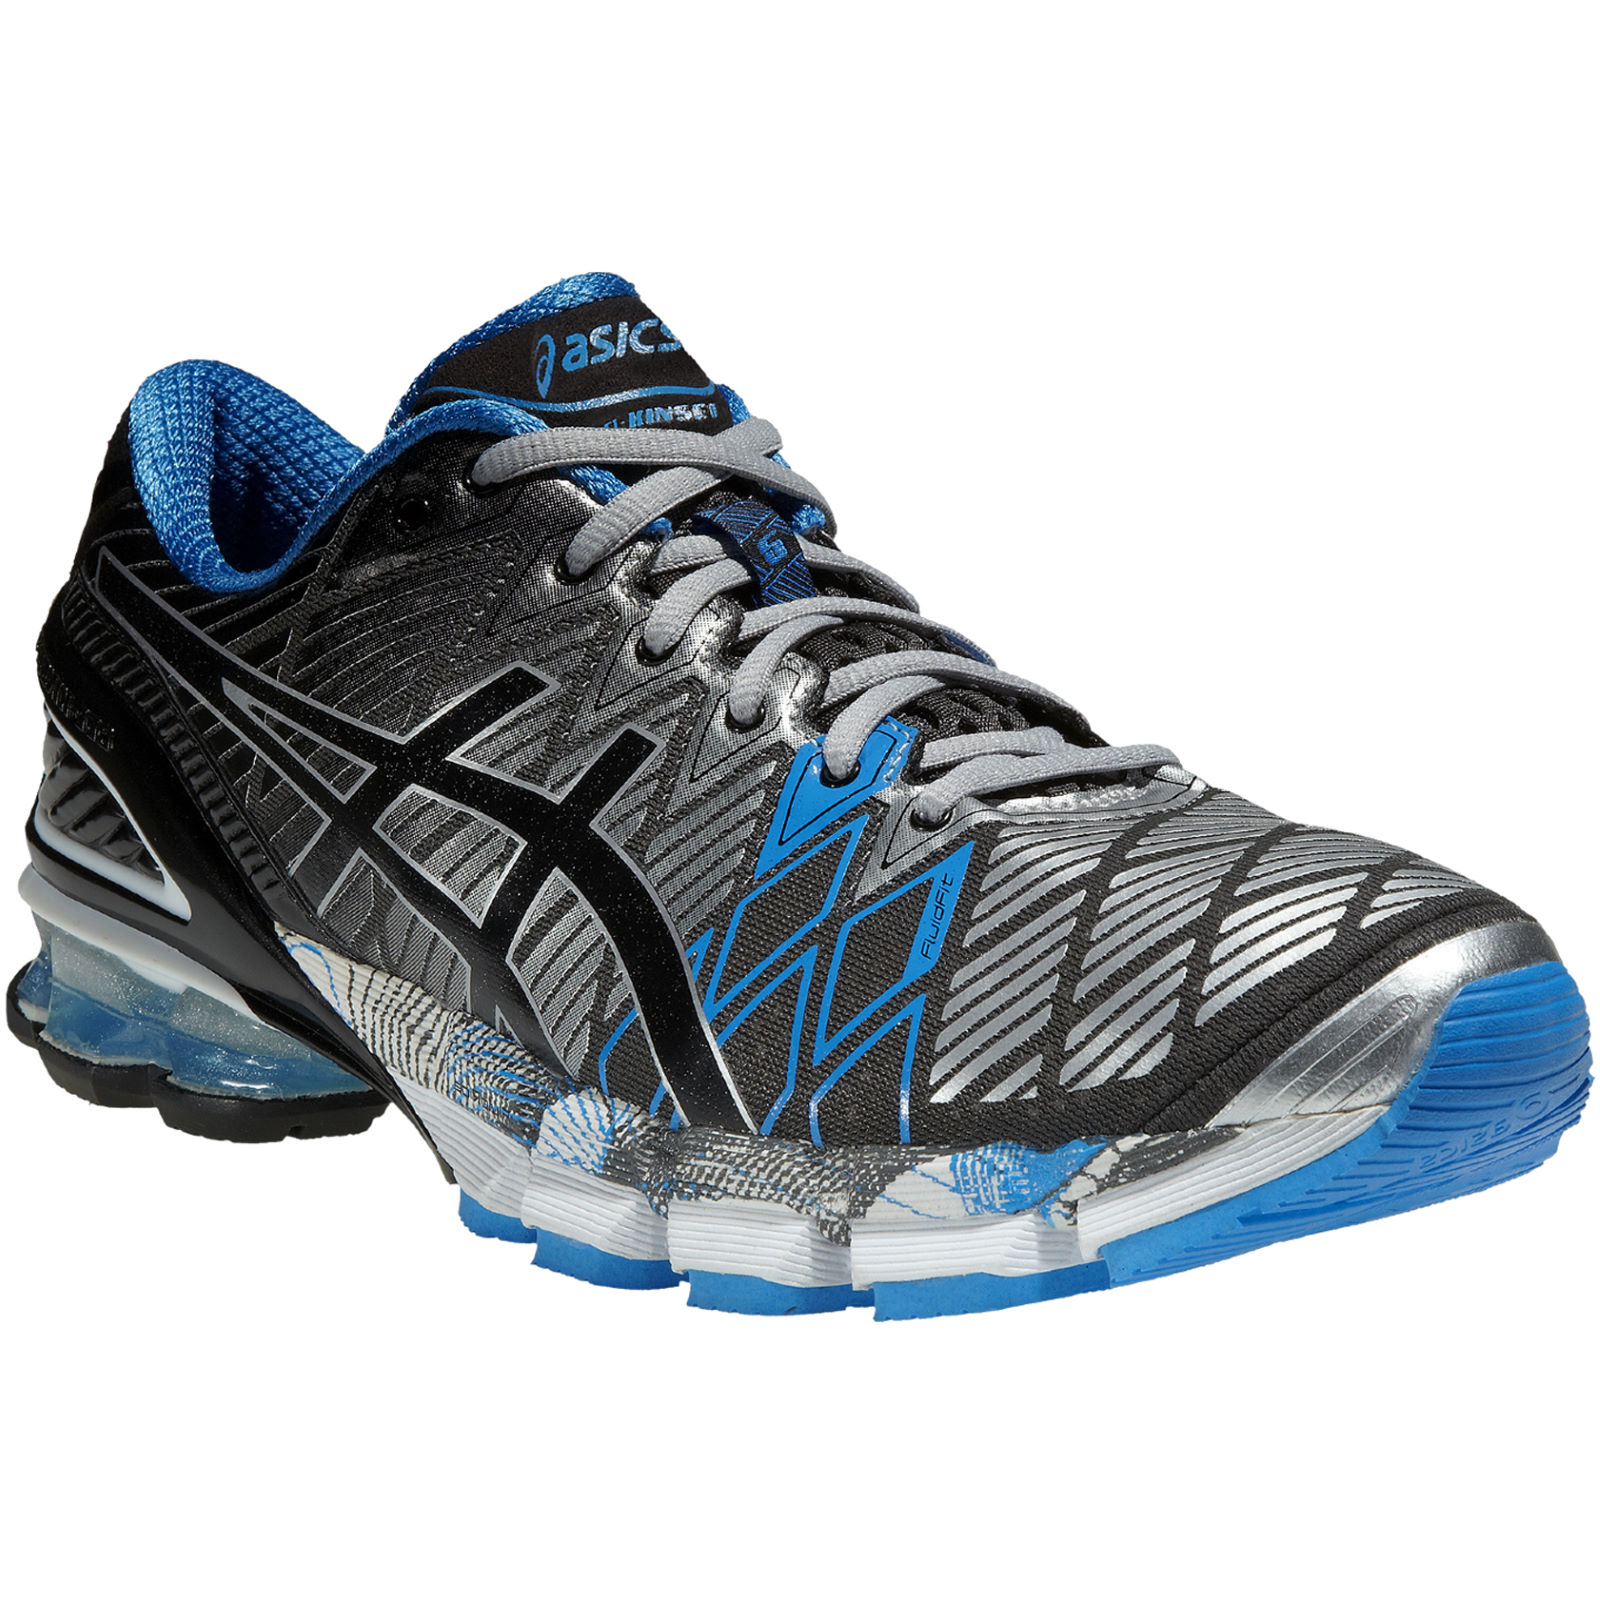 chaussures de running amorties asics gel kinsei 5 shoes aw14 wiggle france. Black Bedroom Furniture Sets. Home Design Ideas